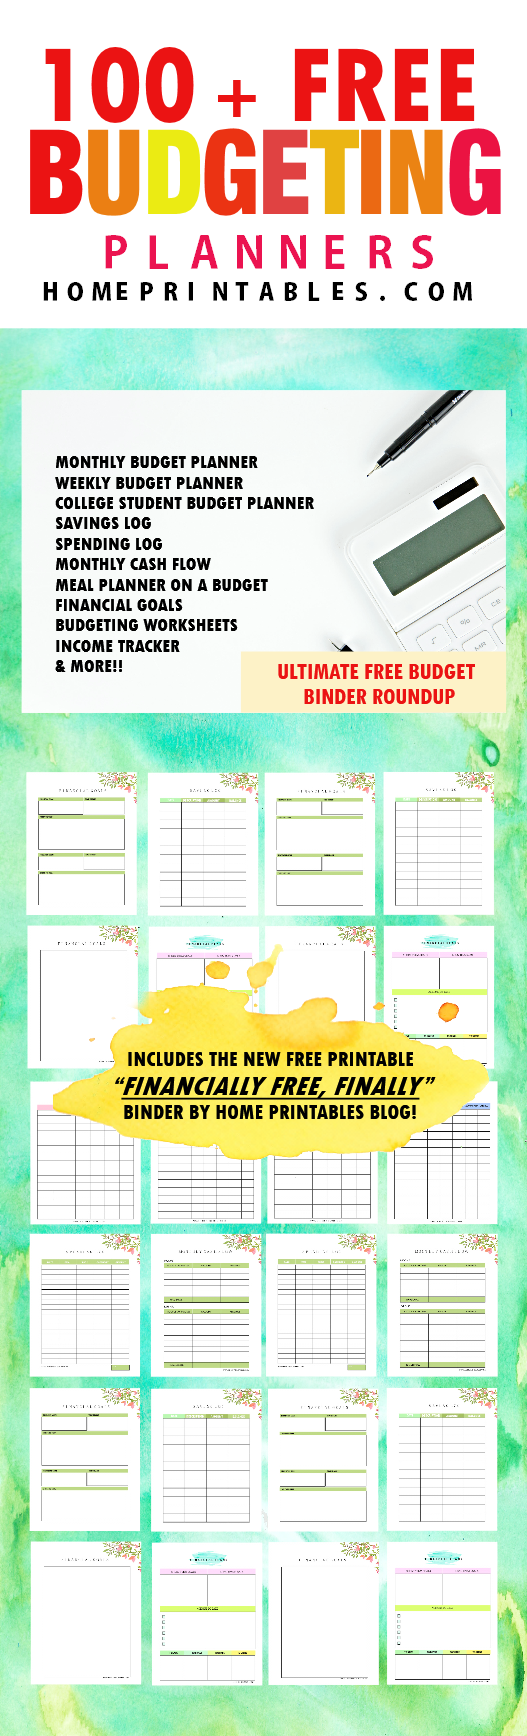 weekly budget planner templates